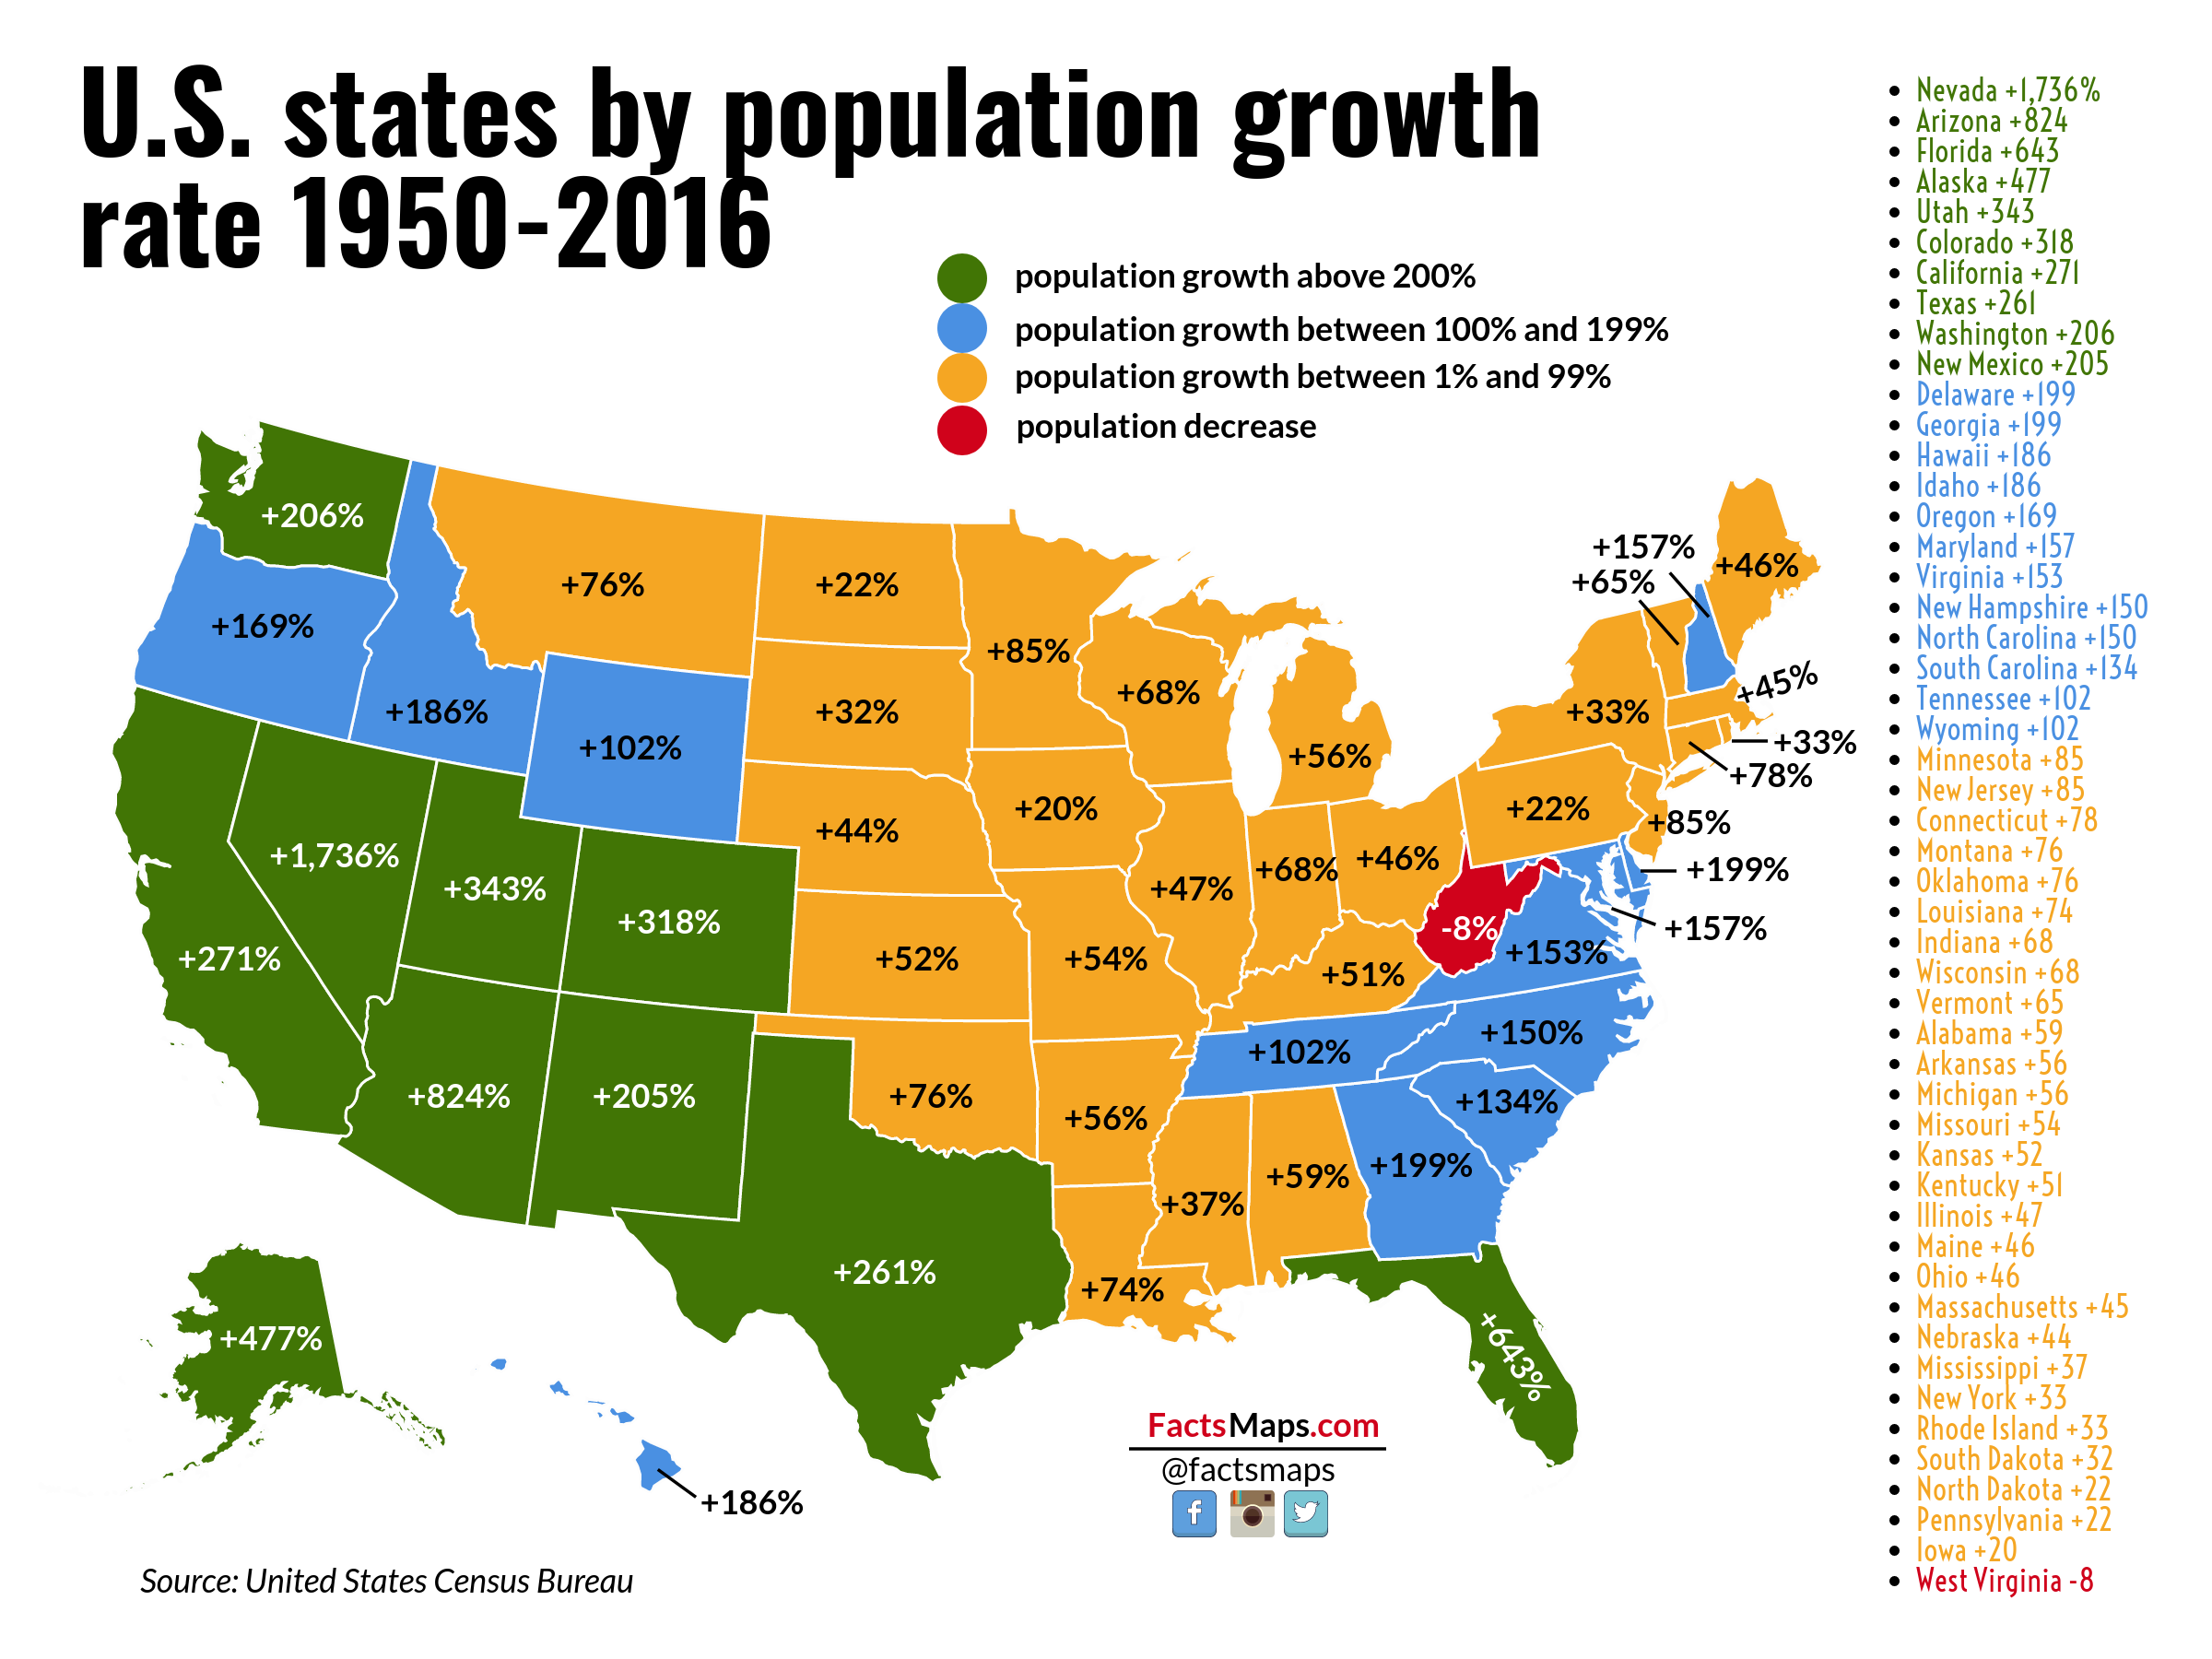 US States by Population Growth Rate 1950-2016 - FactsMaps